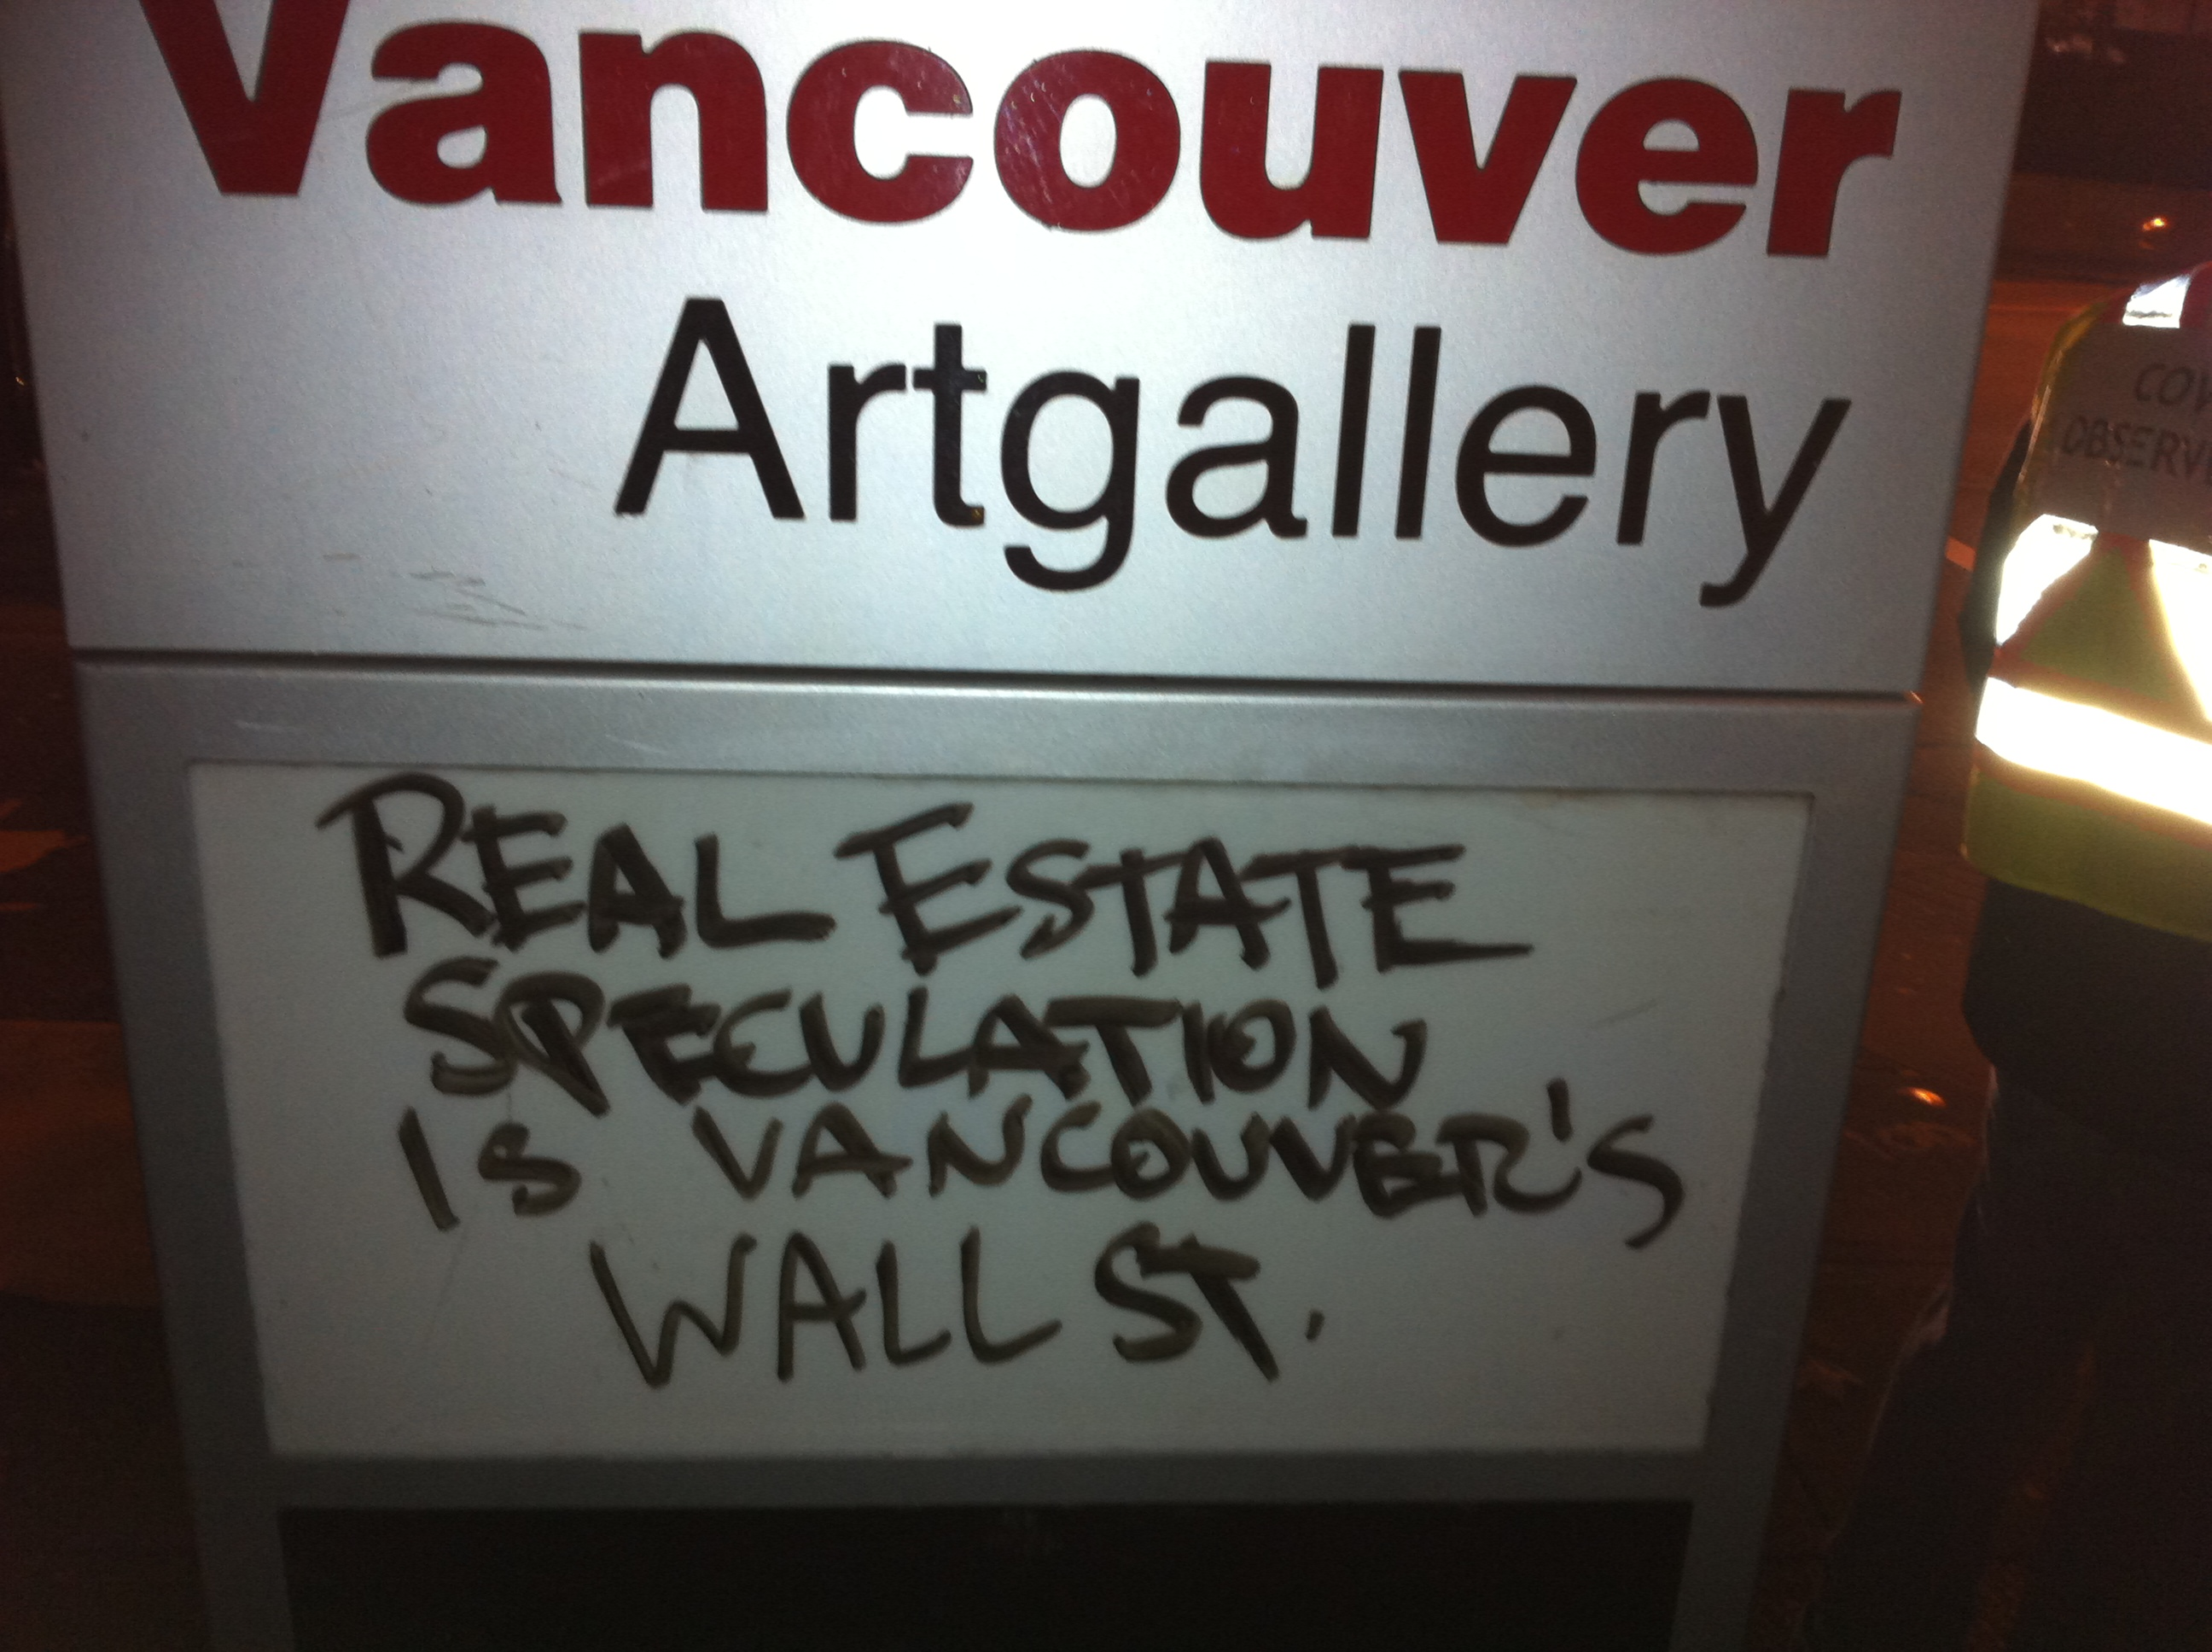 Vancouver's Wall Street